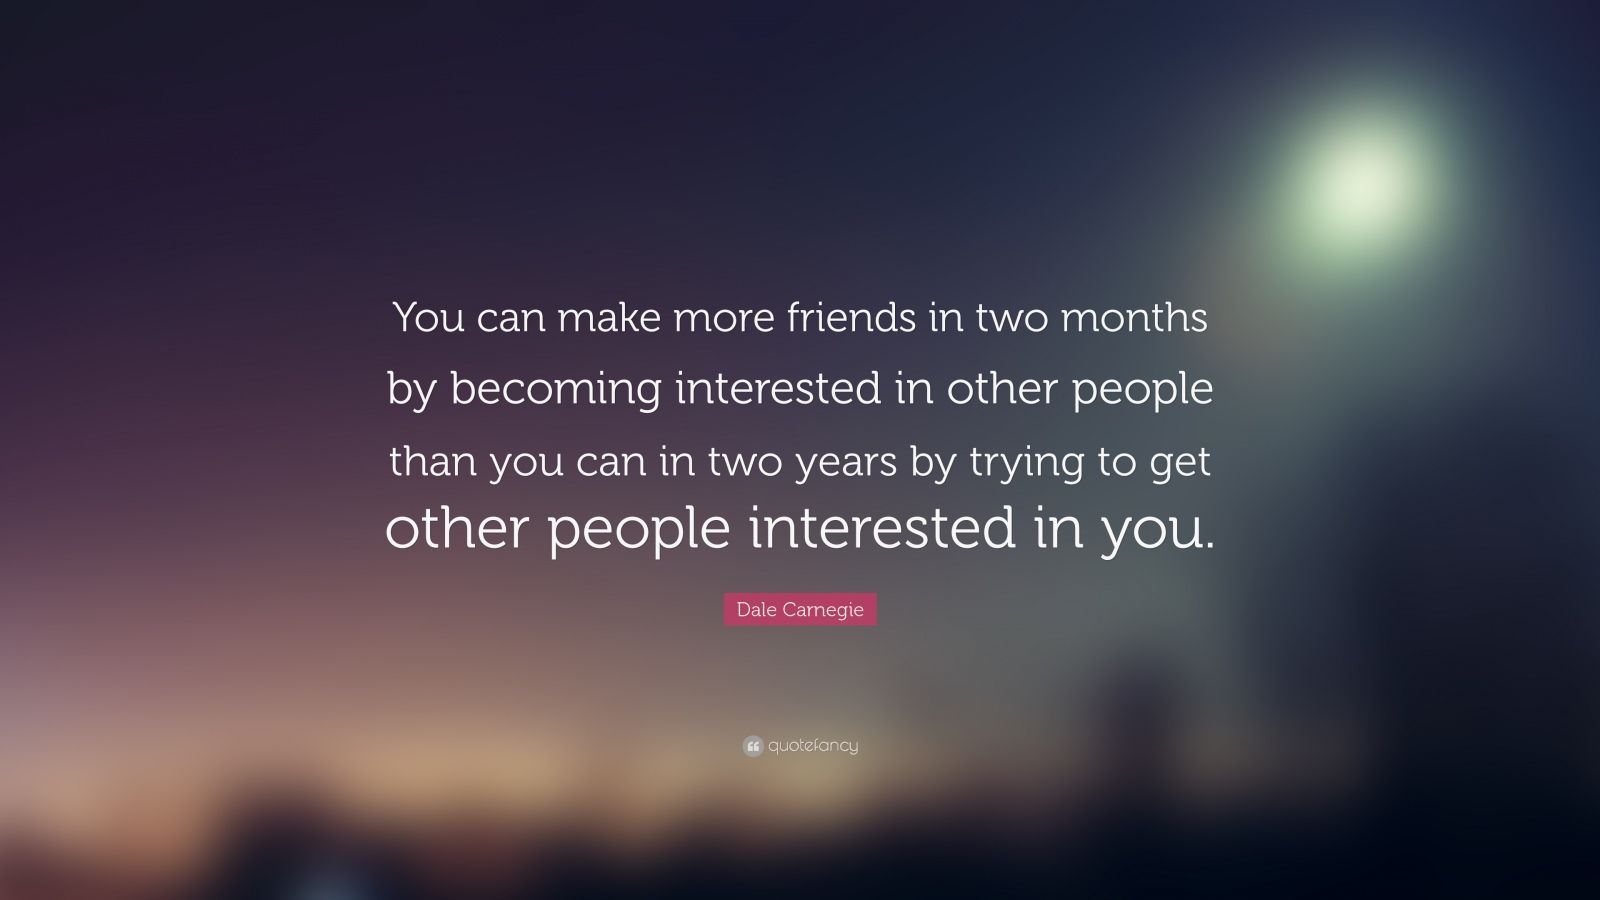 """Dale Carnegie Quote: """"You can make more friends in two months by becoming interested in other people than you can in two years by trying to get other people interested in you."""""""